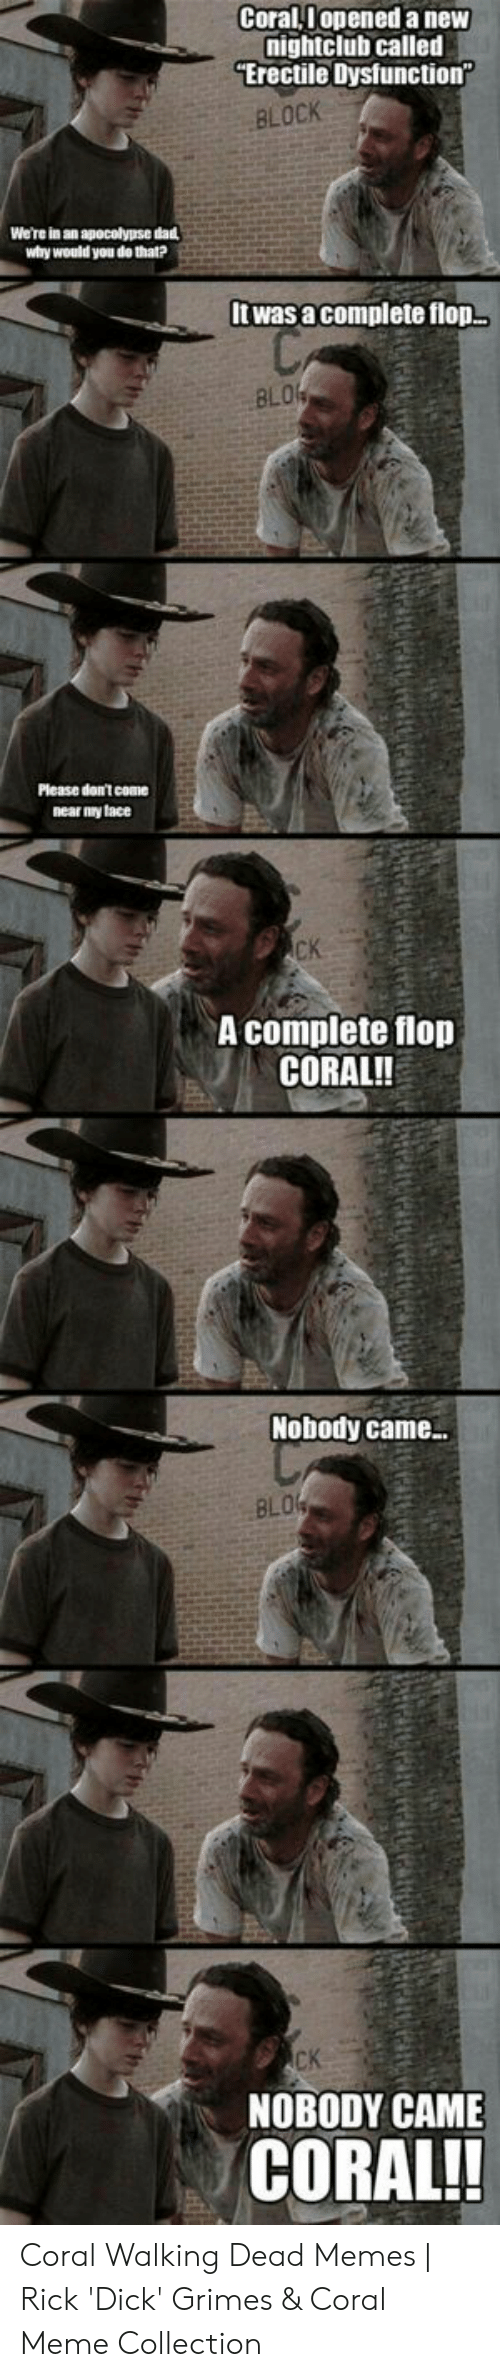 Coral Meme: Coral,I opened a new  nightclub called  Erectile Dysfunction  BLOCK  We're in an apocalypse da  why would you do that?  Itwas a complete flop  8L0%  Please don't coame  near my tace  CK  A complete flop  CORAL!!  Nobody came  BLO4  CK  NOBODY CAME  CORAL!! Coral Walking Dead Memes | Rick 'Dick' Grimes & Coral Meme Collection